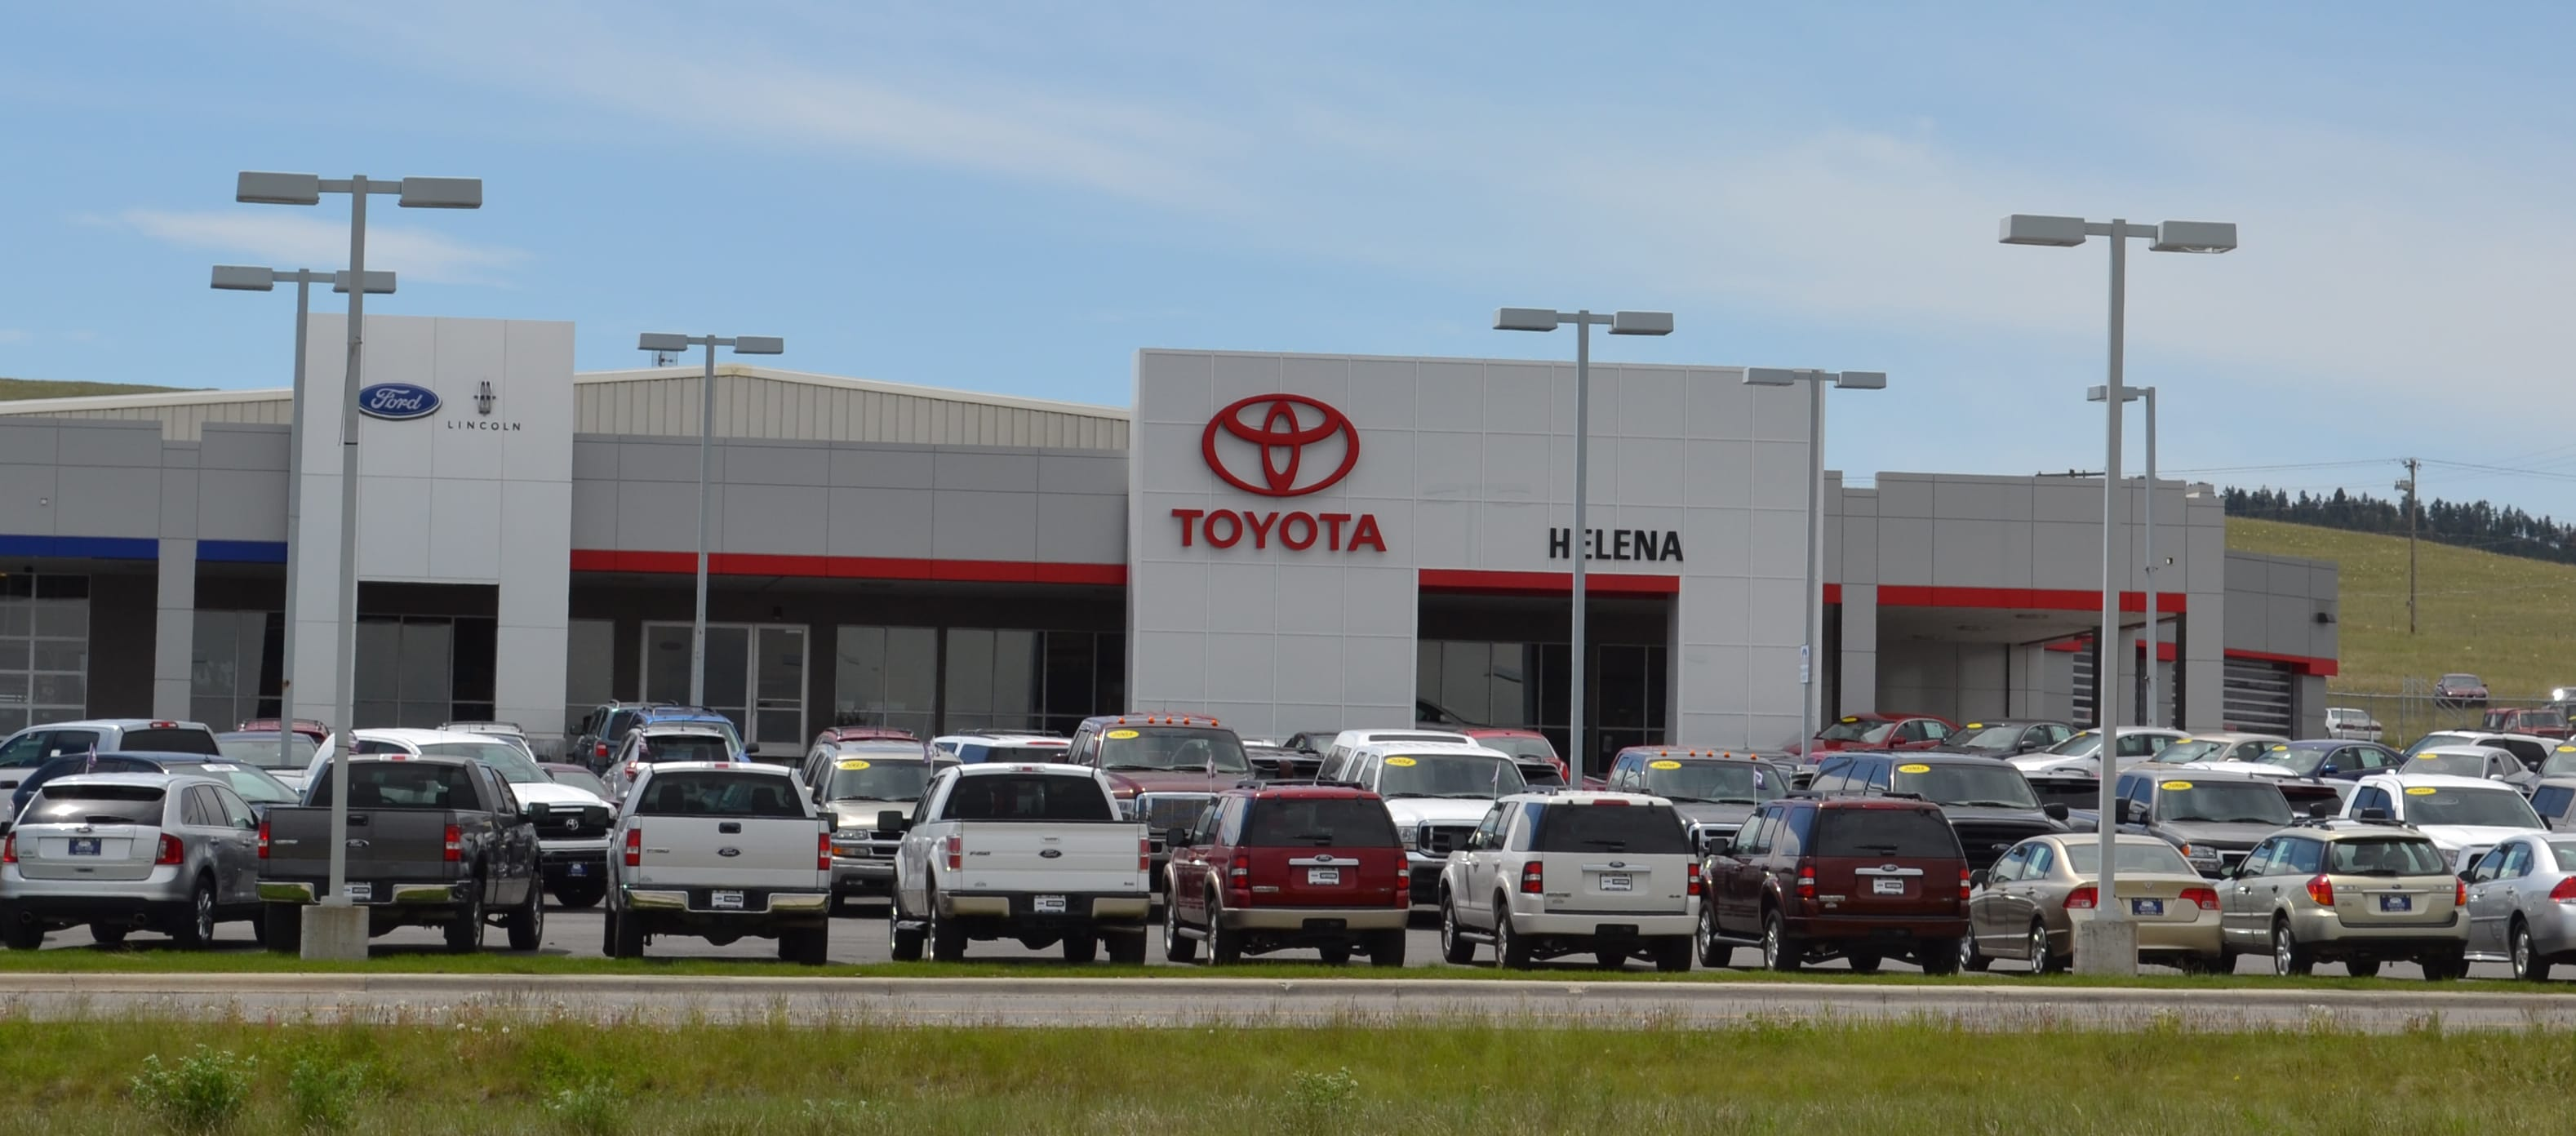 opened new toyota welcome htm automobile york dealership about owned family we in re to a potsdam dealer tj ny